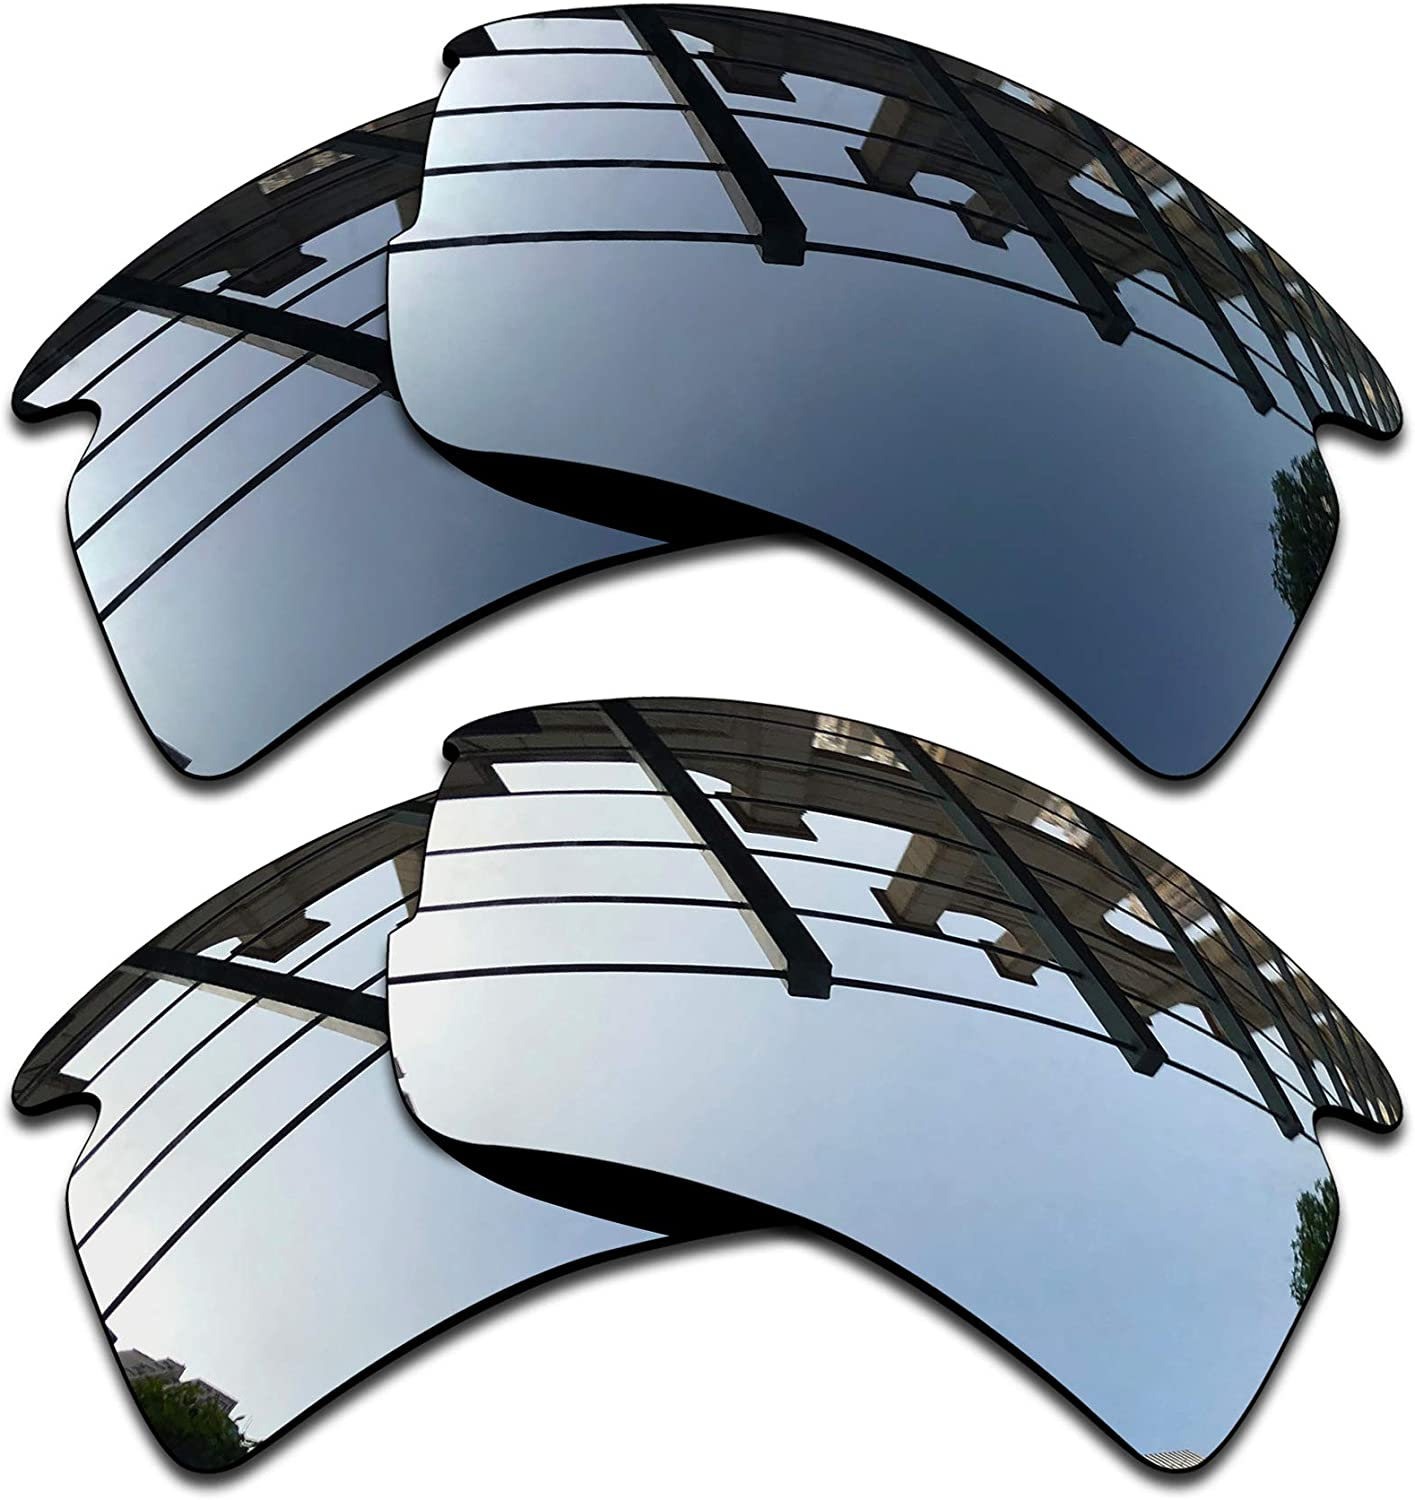 SEEABLE Premium Polarized Mirror Replacement Lenses for Oakley Flak 2.0 Asian Fit OO9271 Sunglasses